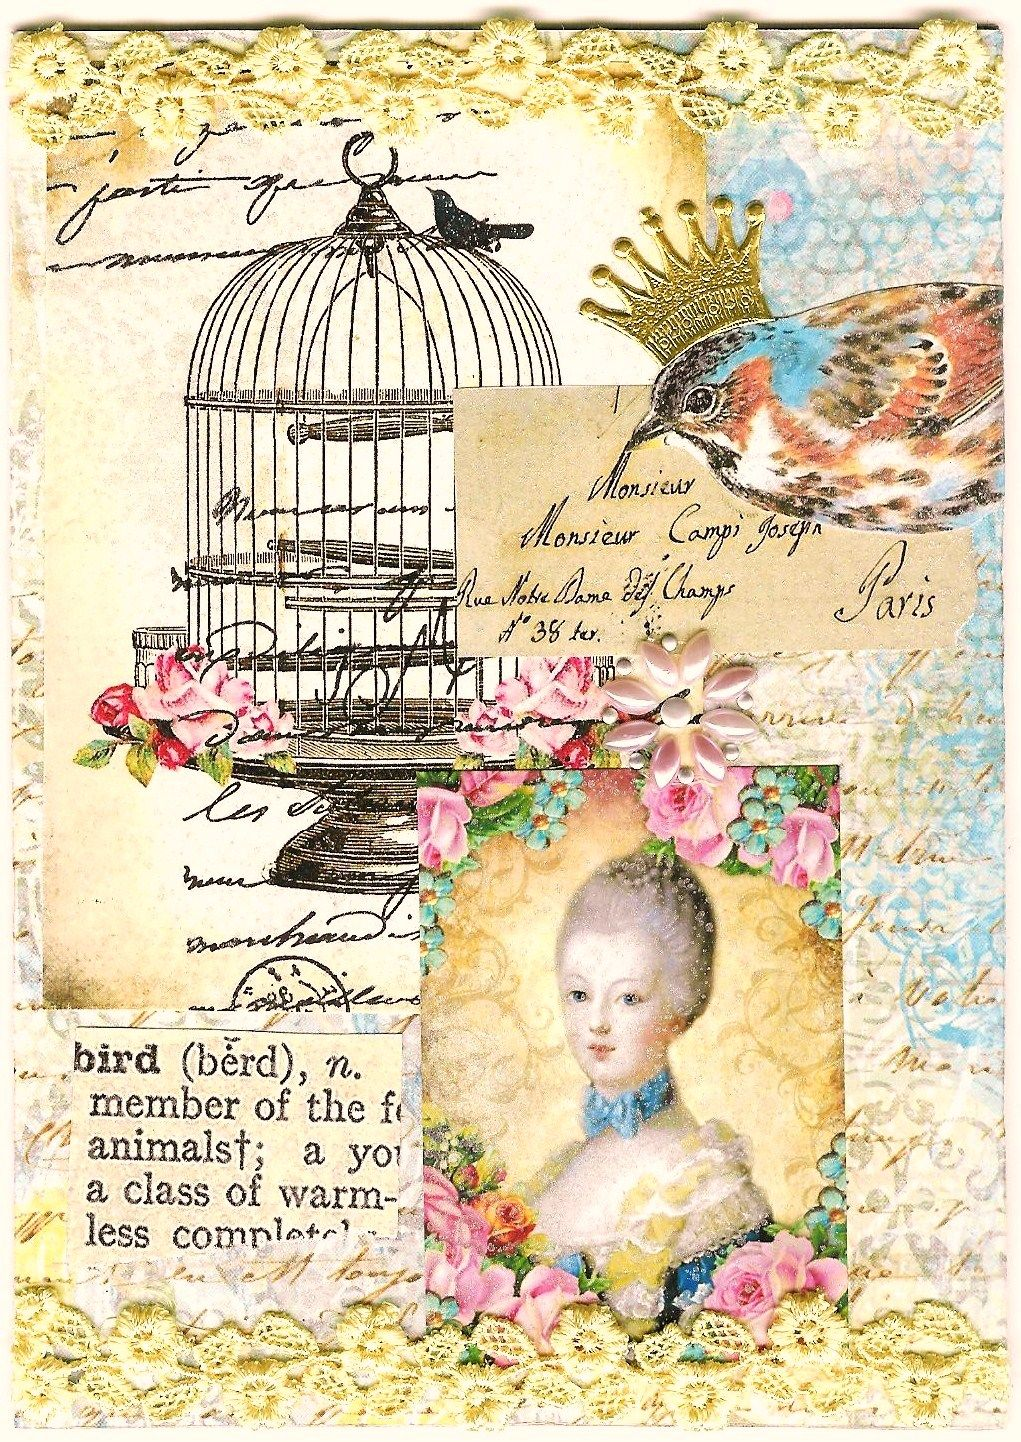 Nostalgic Collage': January 2013 Marie Antoinette Art Journal Page